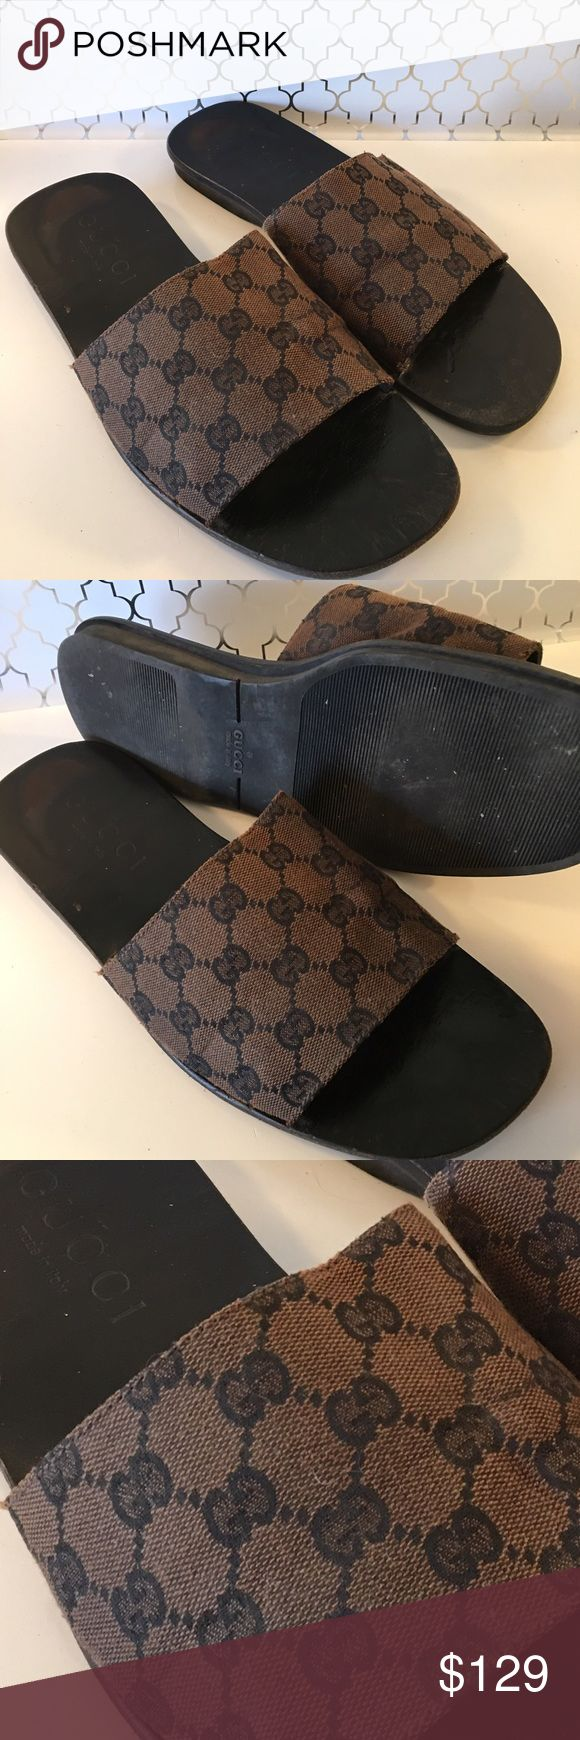 ⭐️GUCCI MENS SANDALS  AUTHENTIC GUCCI MENS SANDALS 100% AUTHENTIC. HIGH END ITALIAN STYLE IN THESE GUCCI SANDALS. VERY STYLISH . USED CONDITION. SIZE 42.5 WHICH IS A SIZE 9.5 Gucci Shoes Sandals & Flip-Flops